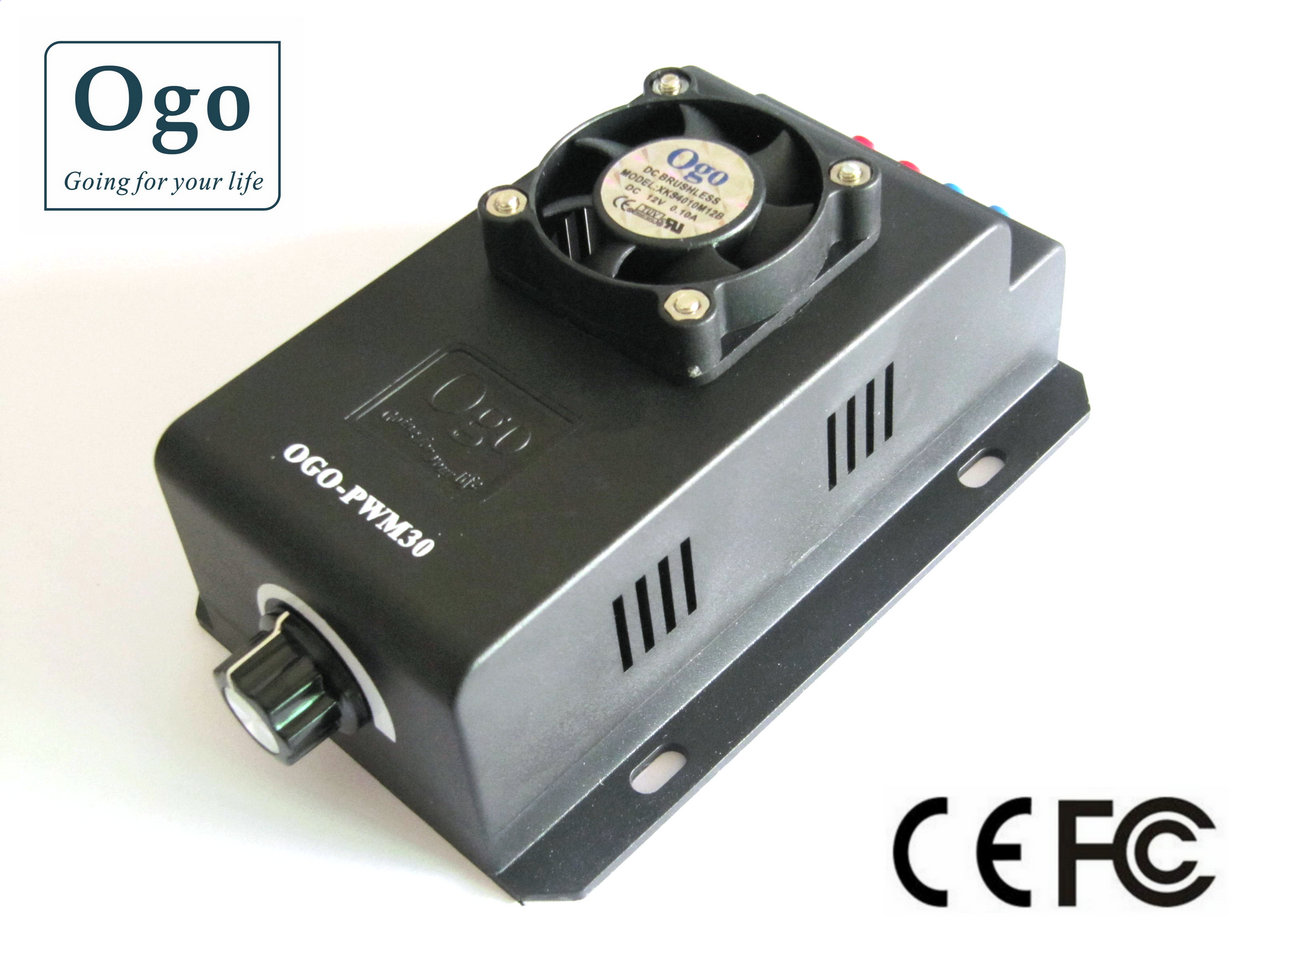 Ogo professional smart pwm with open setting function 30a.